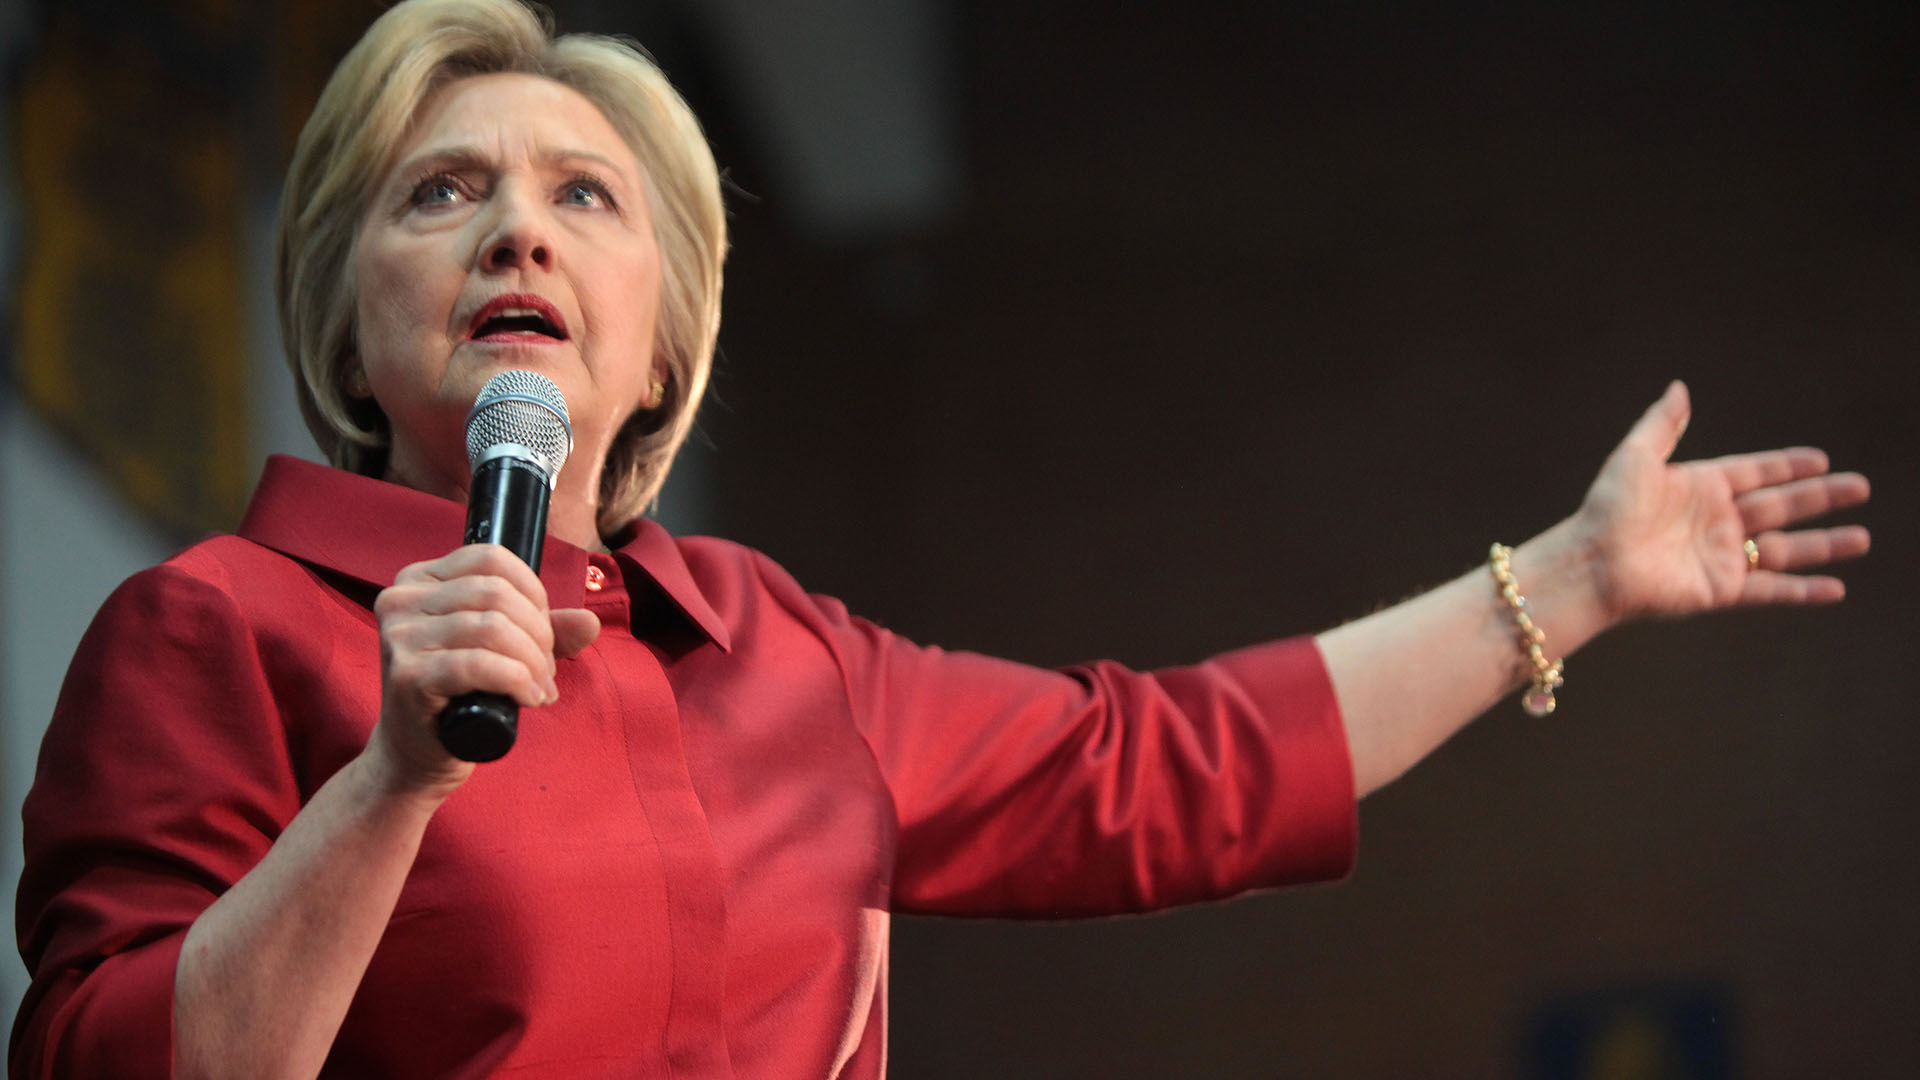 Clinton unveils anti-bullying plan for schools